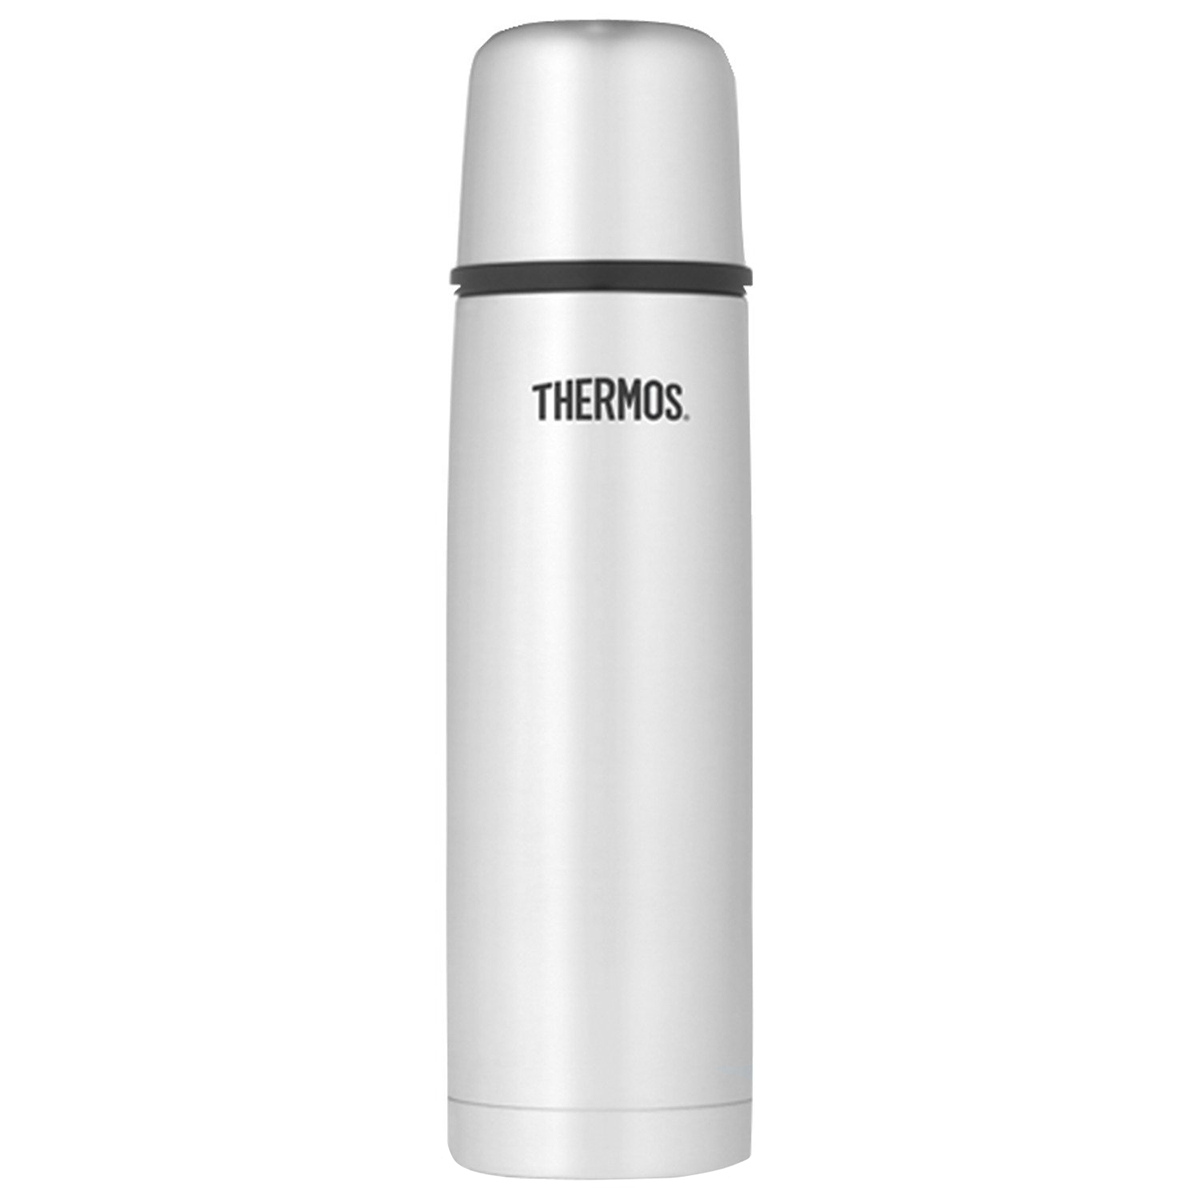 Thermos Thermoskanne Details About Thermos Vacuum Insulated Stainless Steel Compact Beverage Bottle